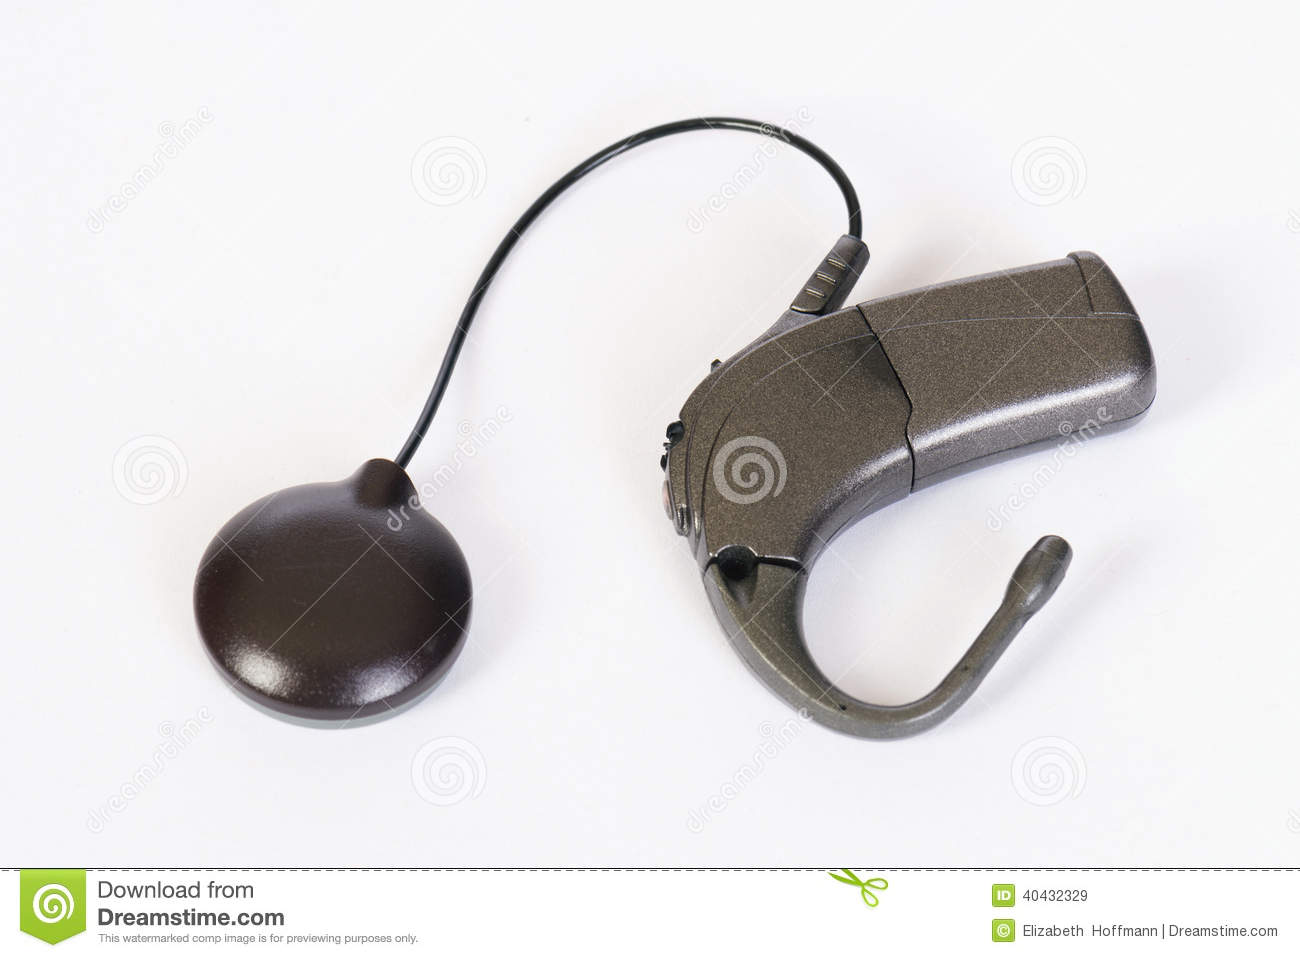 strategies for successful job hunting as a hearing aid user